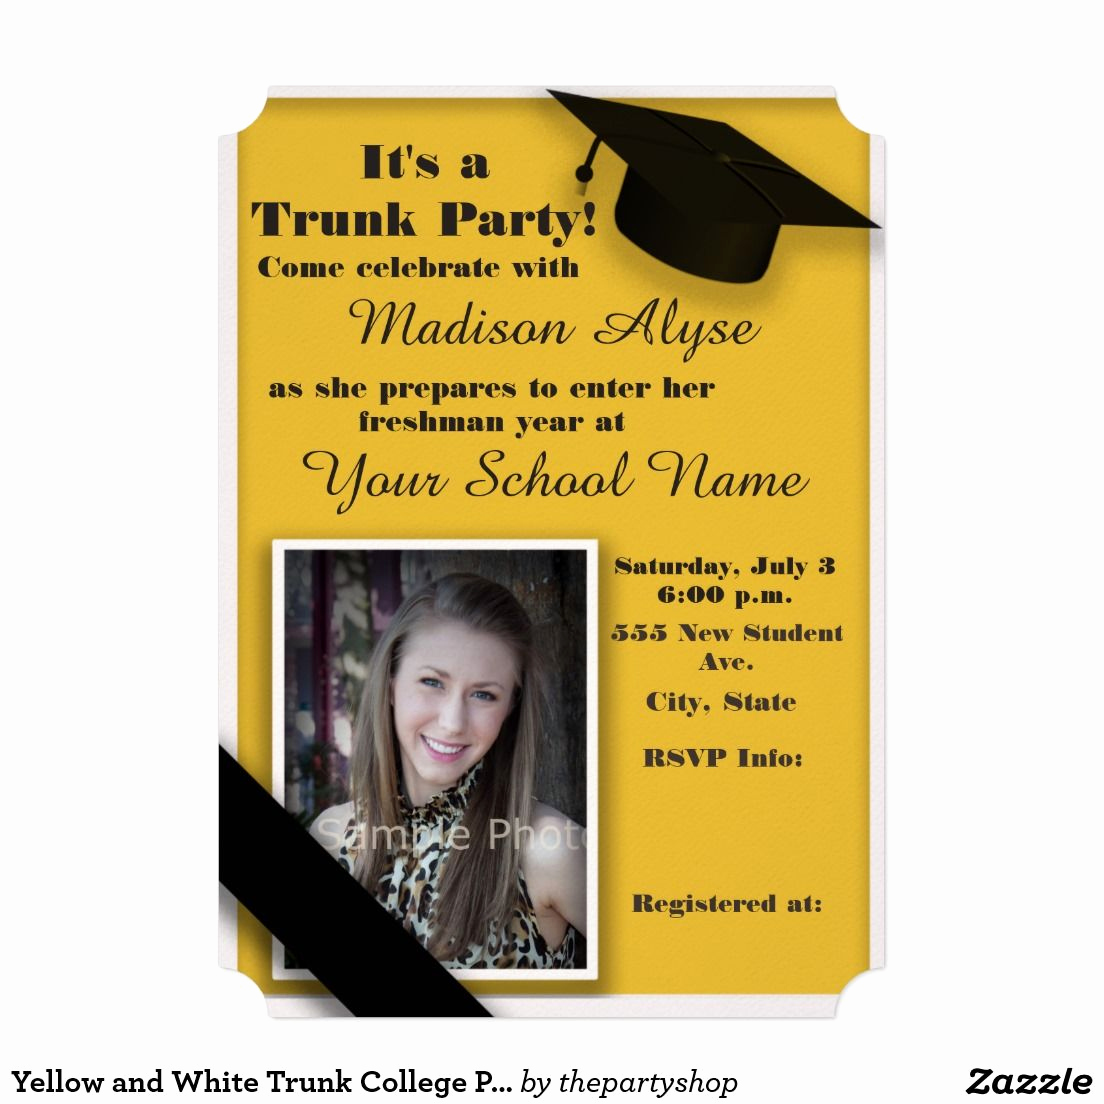 Send Off Party Invitation Luxury Yellow and White Trunk College Party Invitation